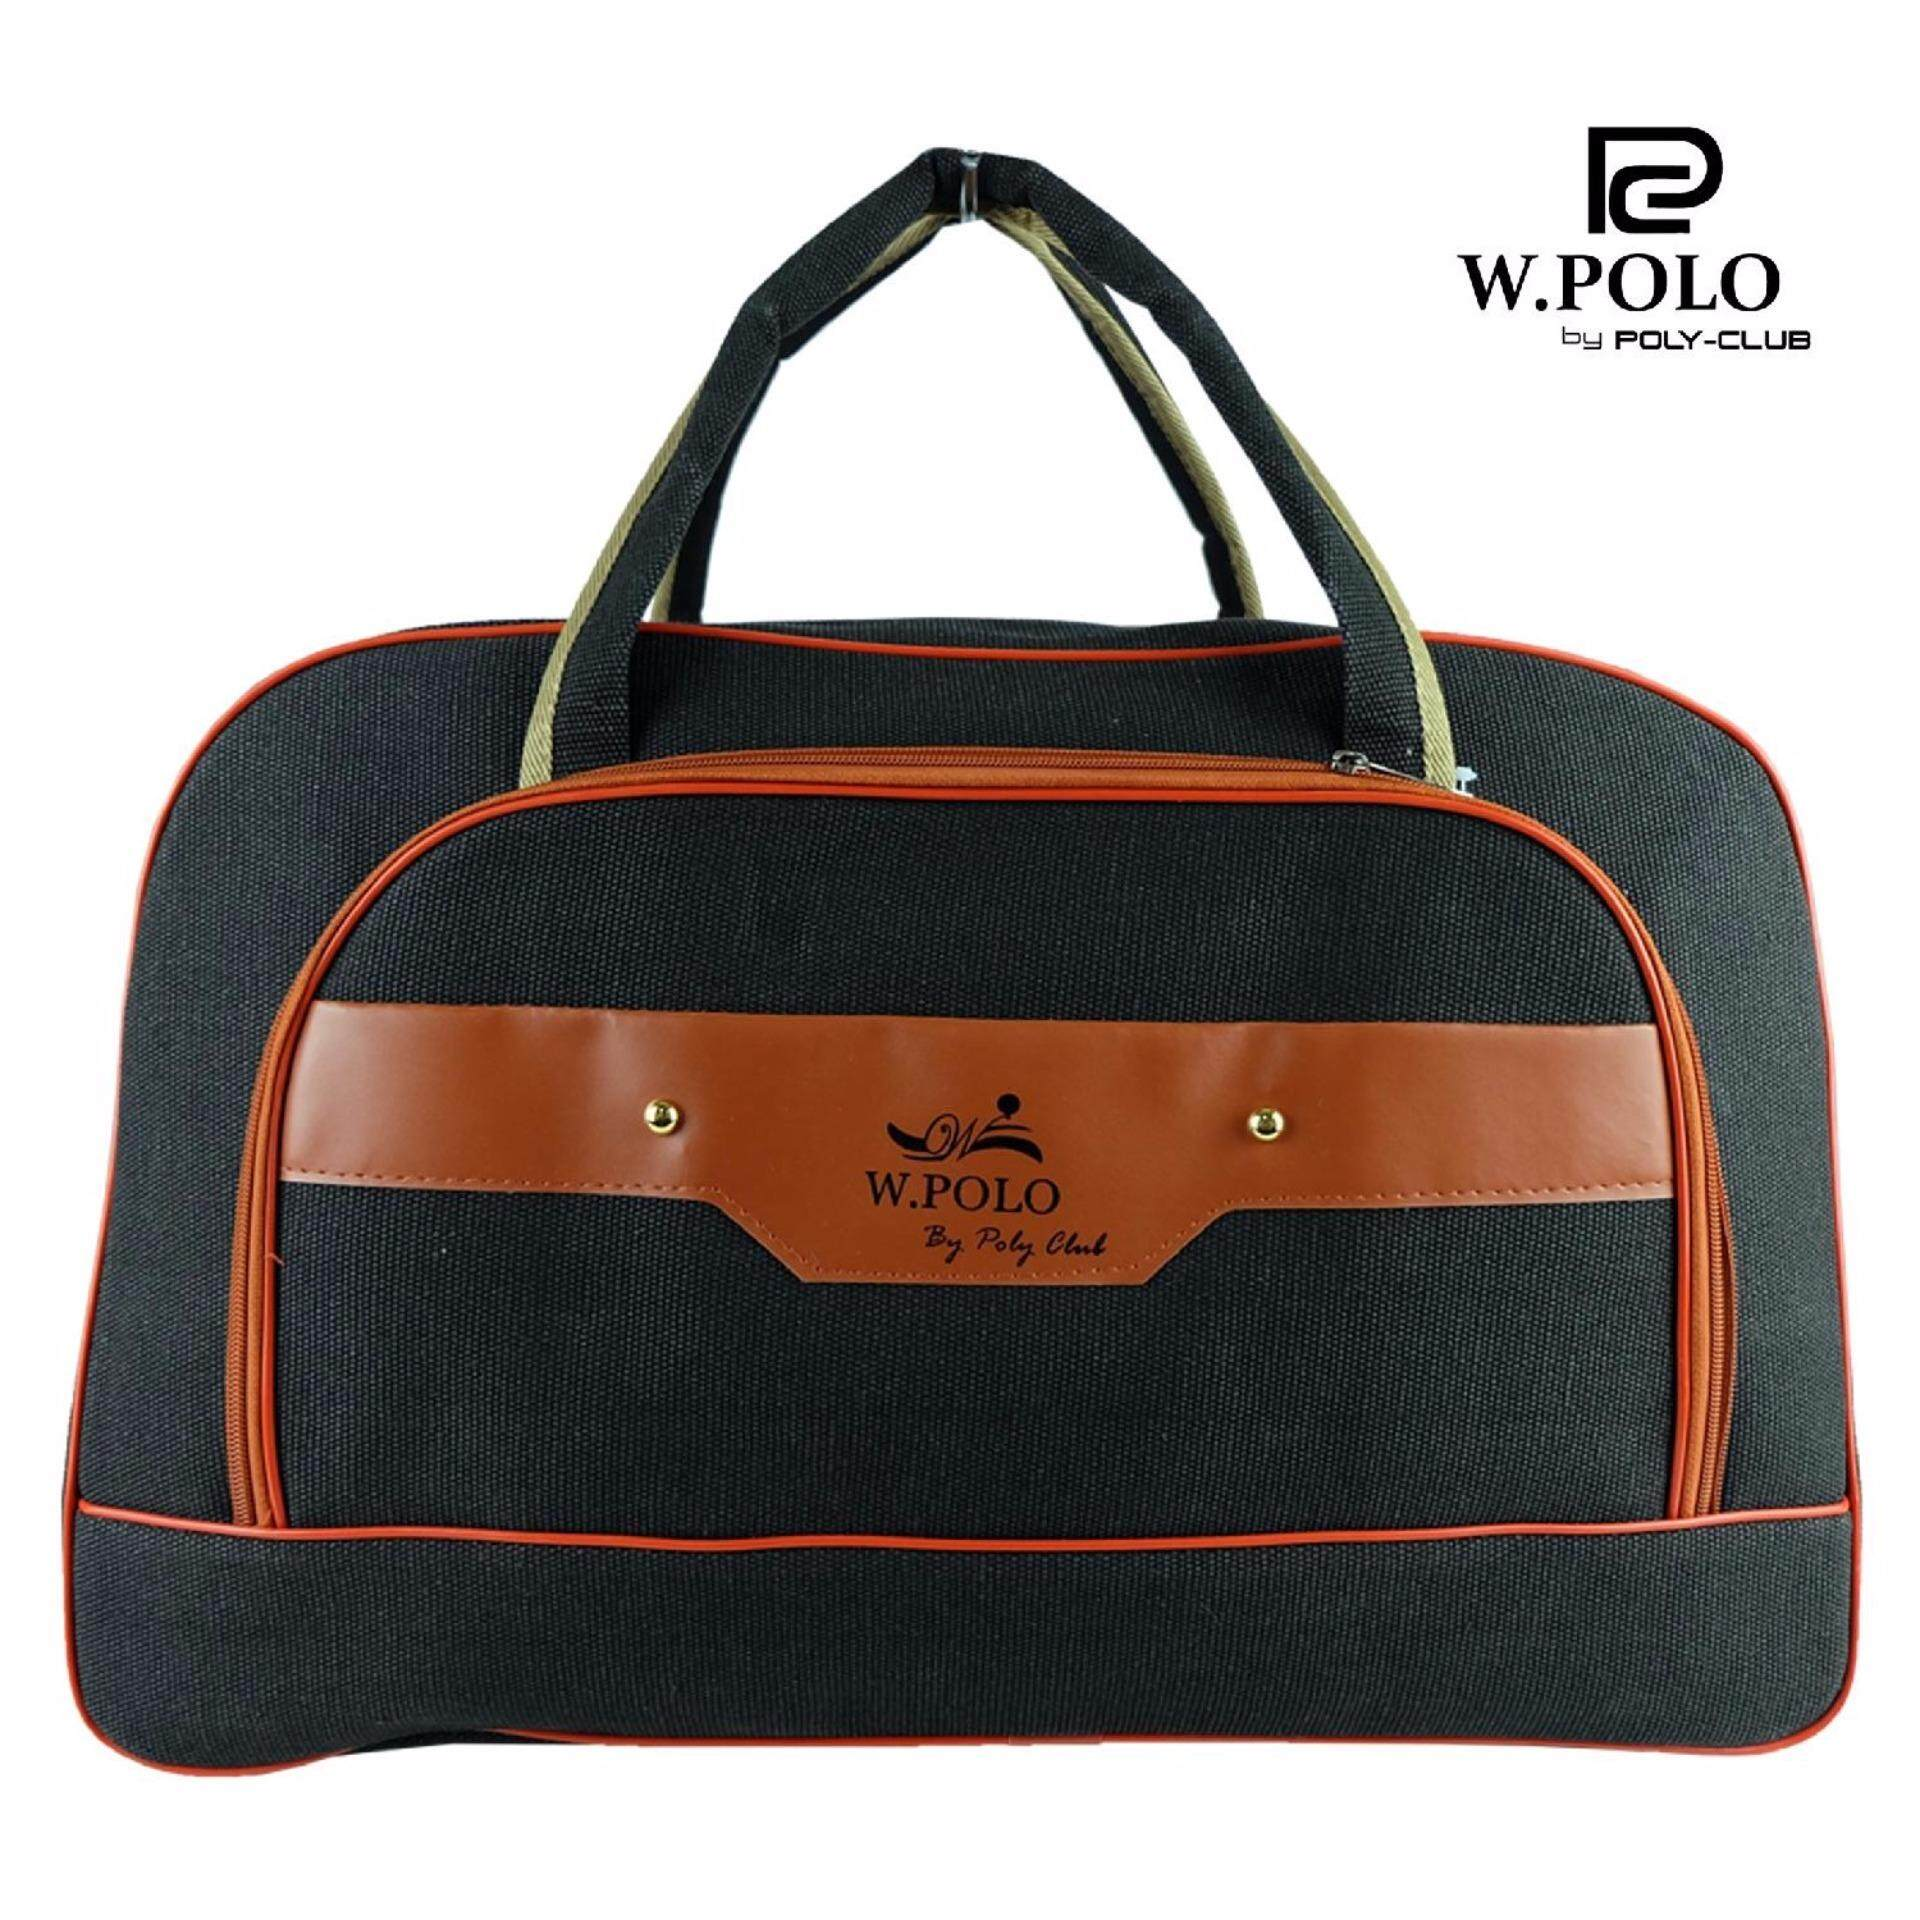 W.POLO WT1713 20inch Ultra Light-Weight Travelling Duffel Bag (Black)